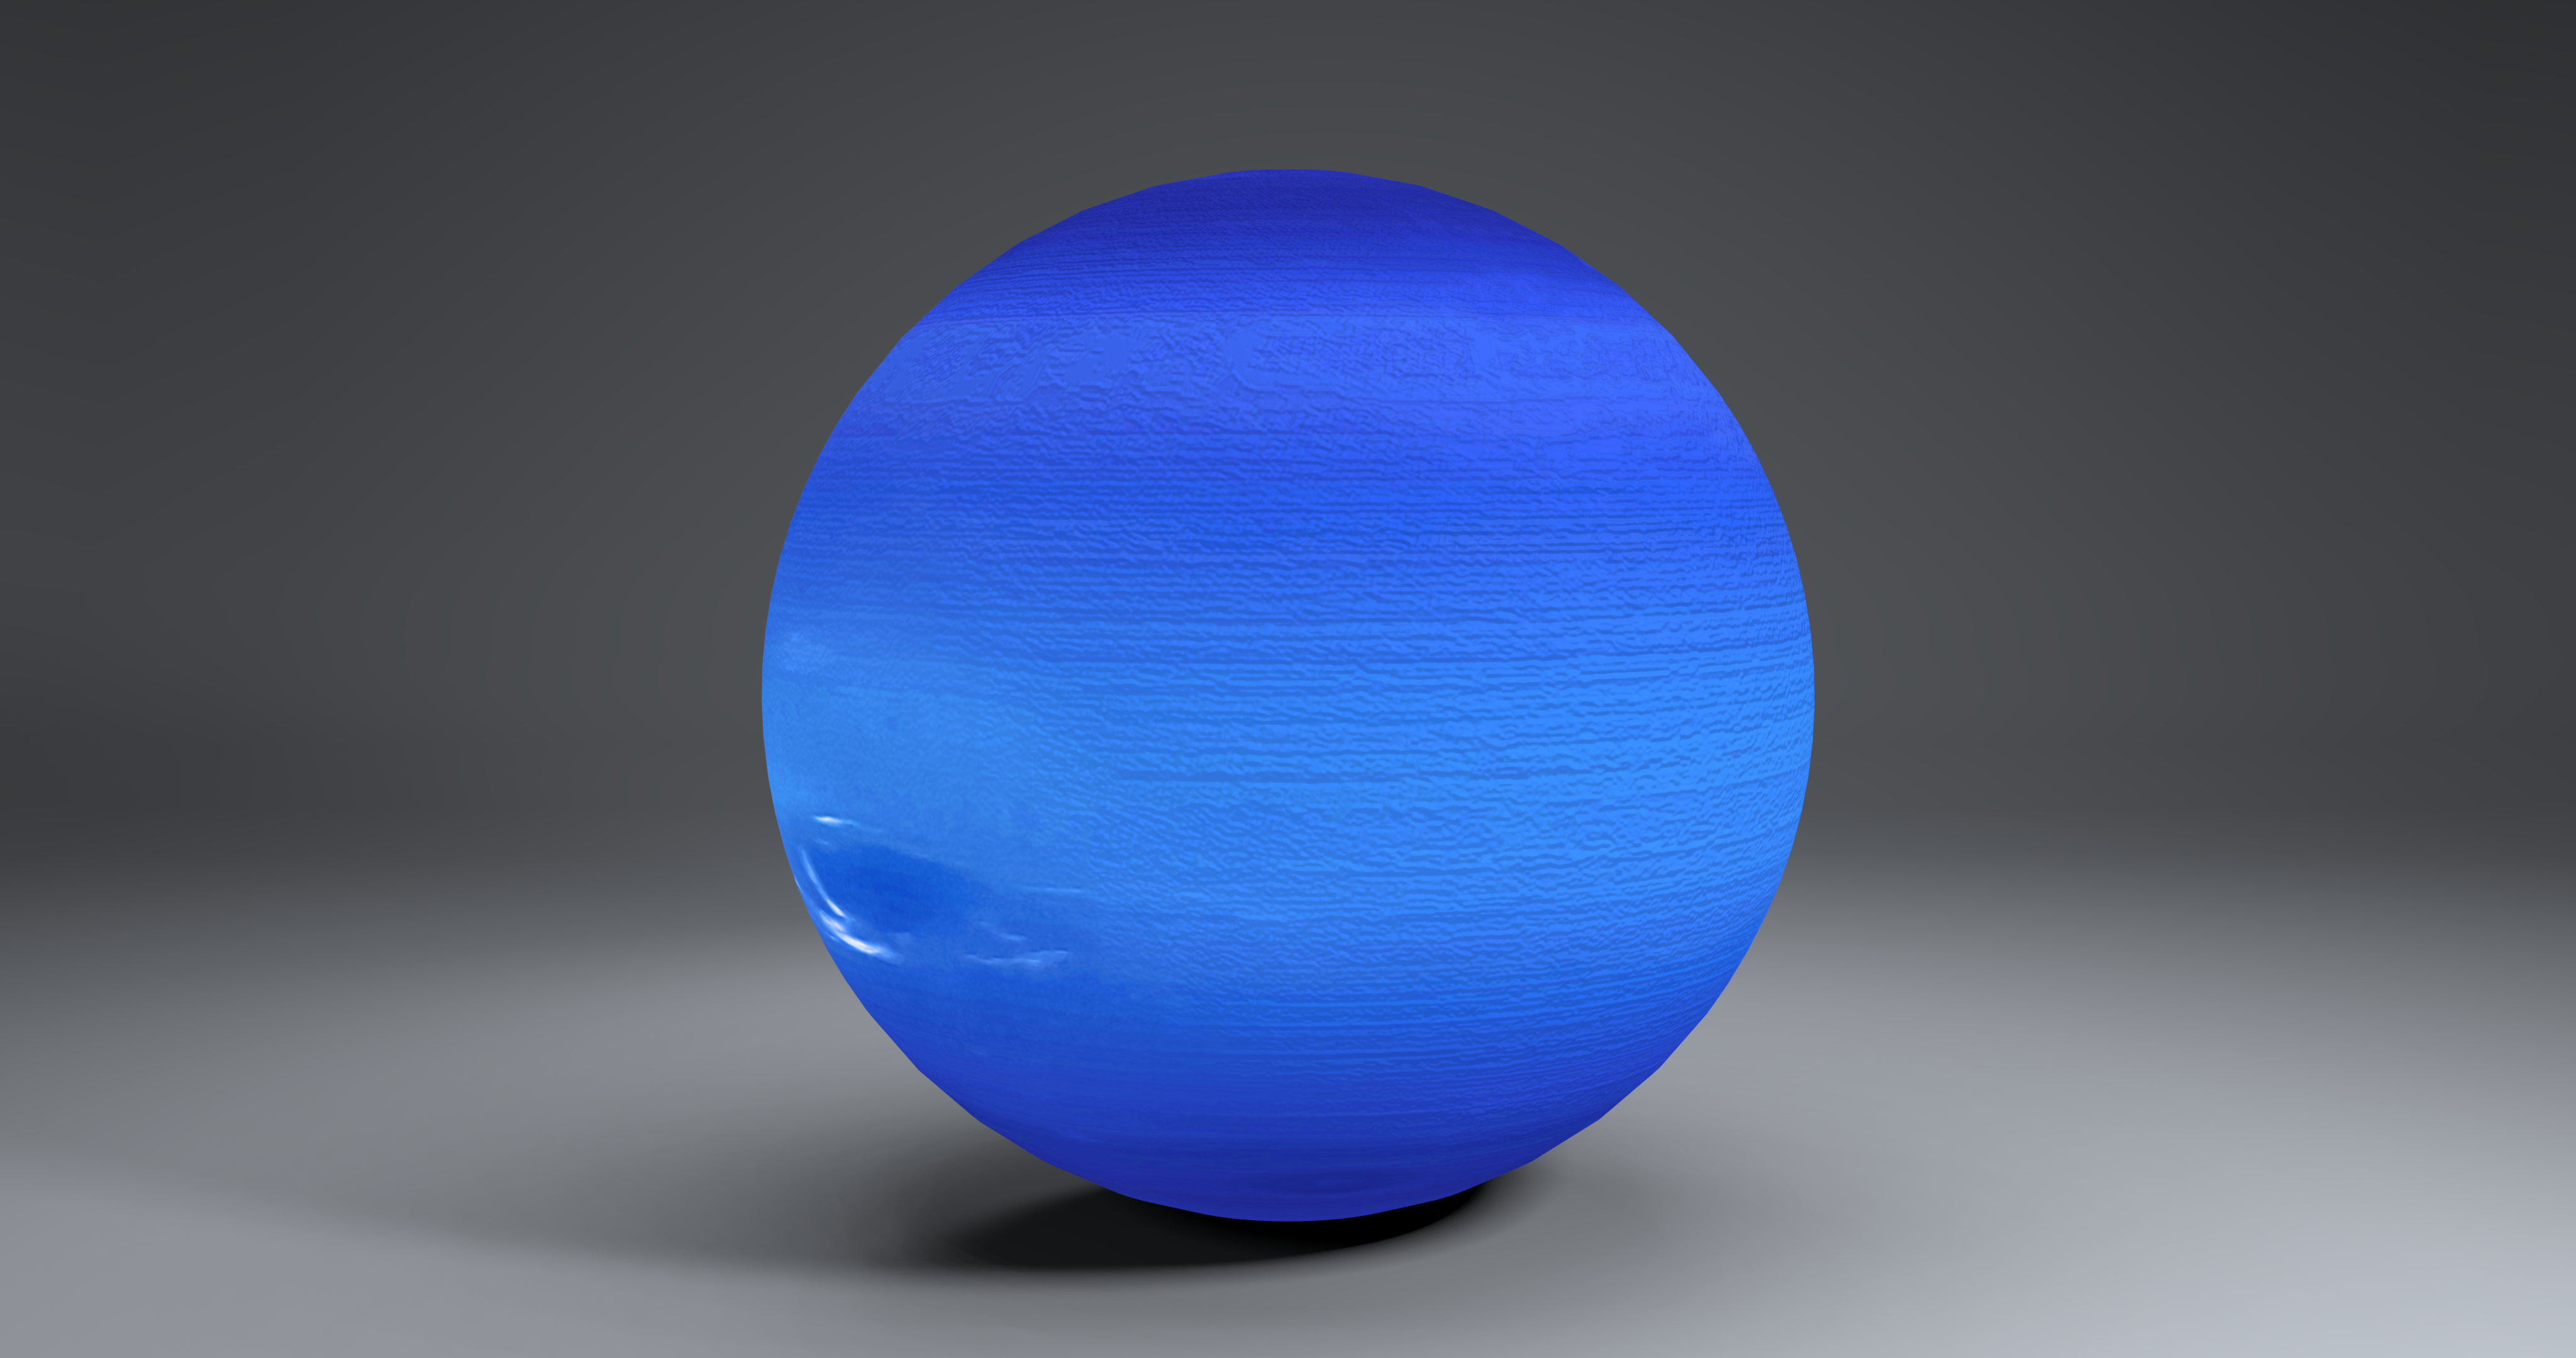 neptune 2k globe 3d model 3ds fbx blend dae obj 269172